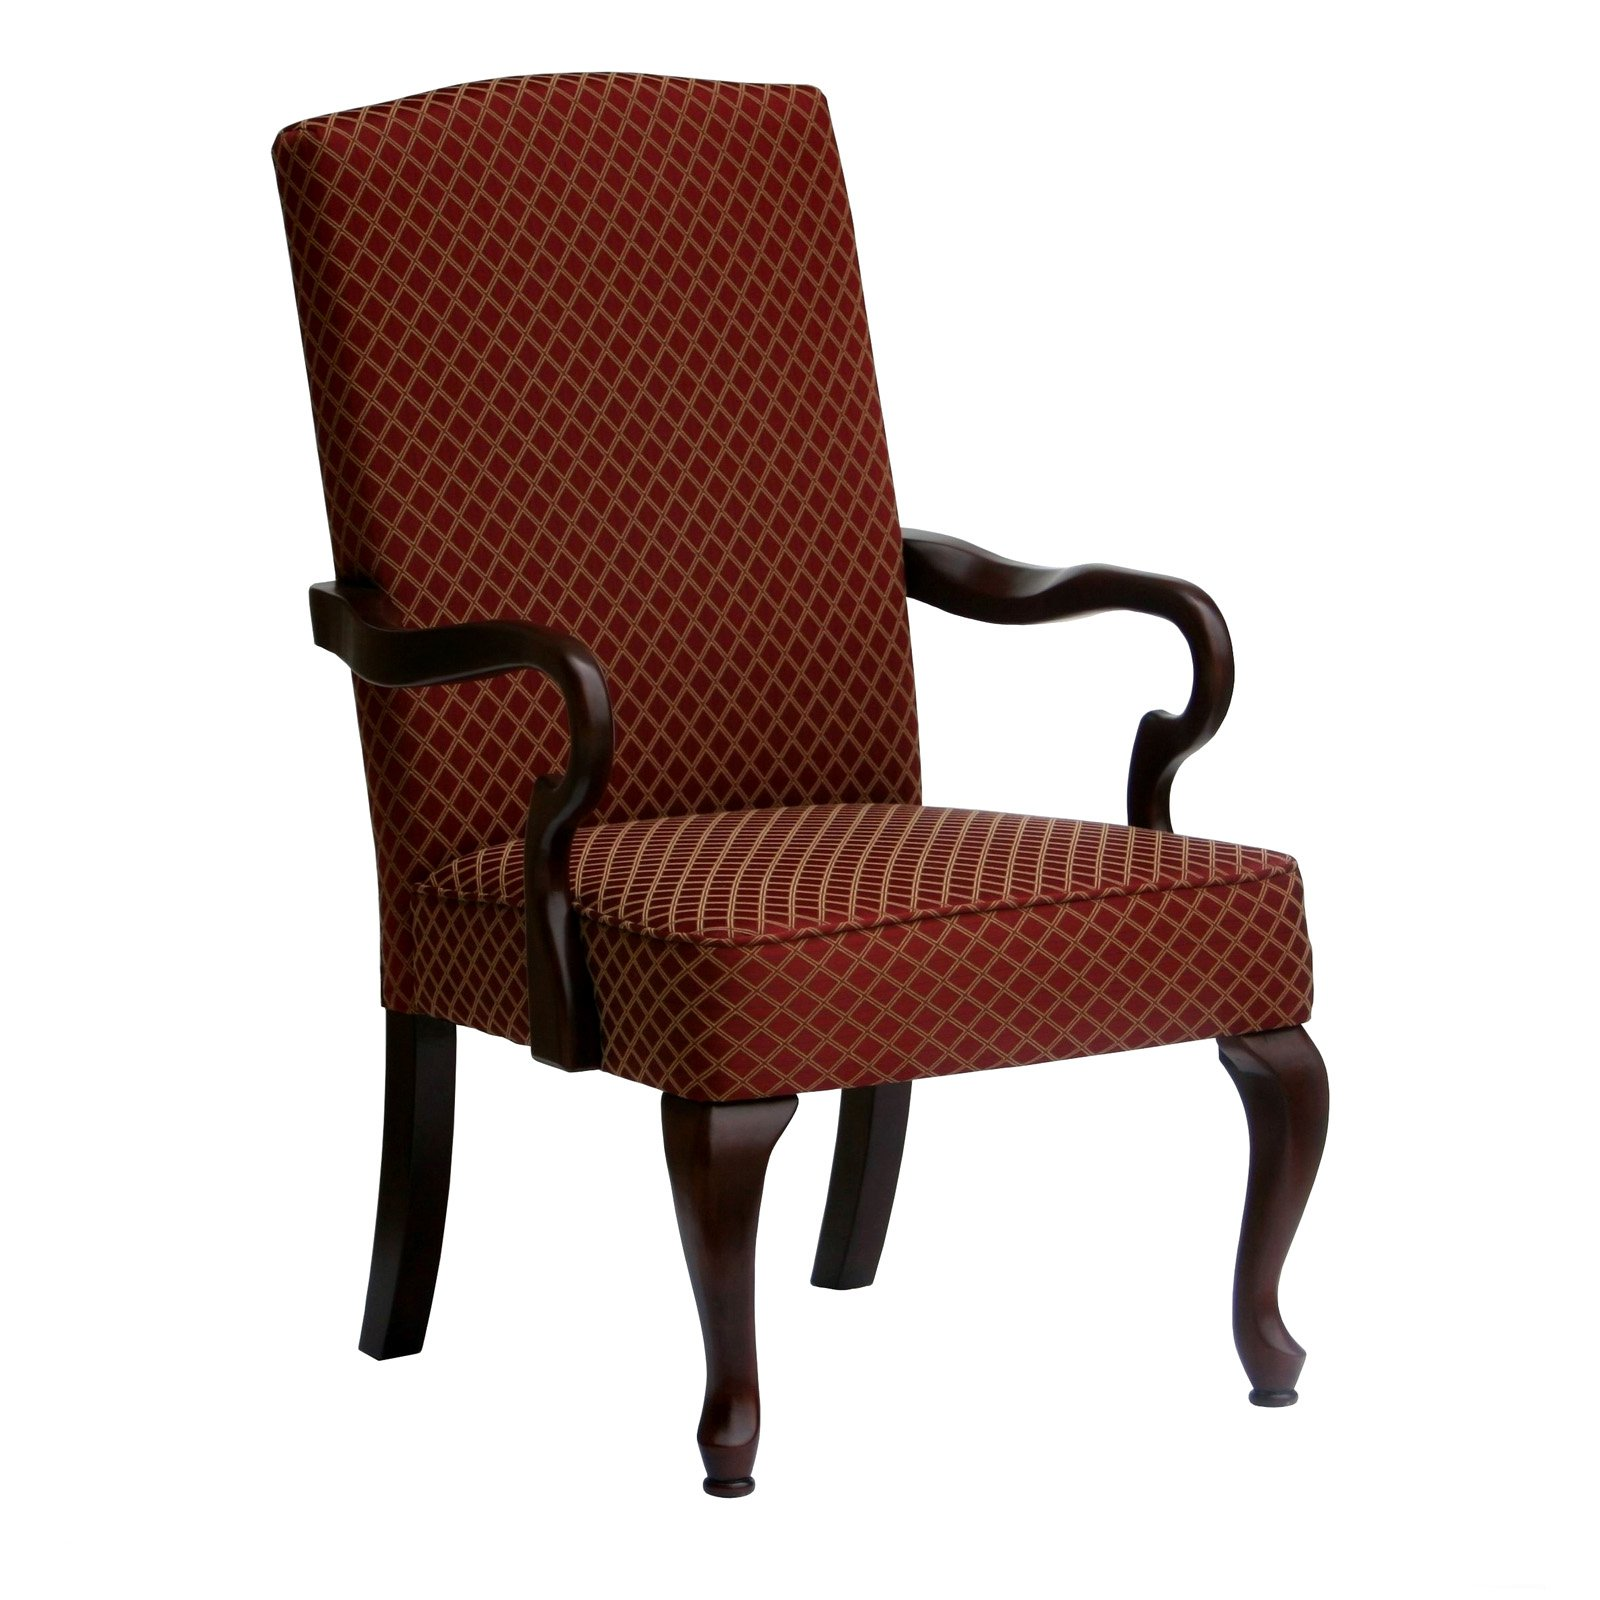 Upholstered Arm Chairs Hampton Upholstered Arm Chair